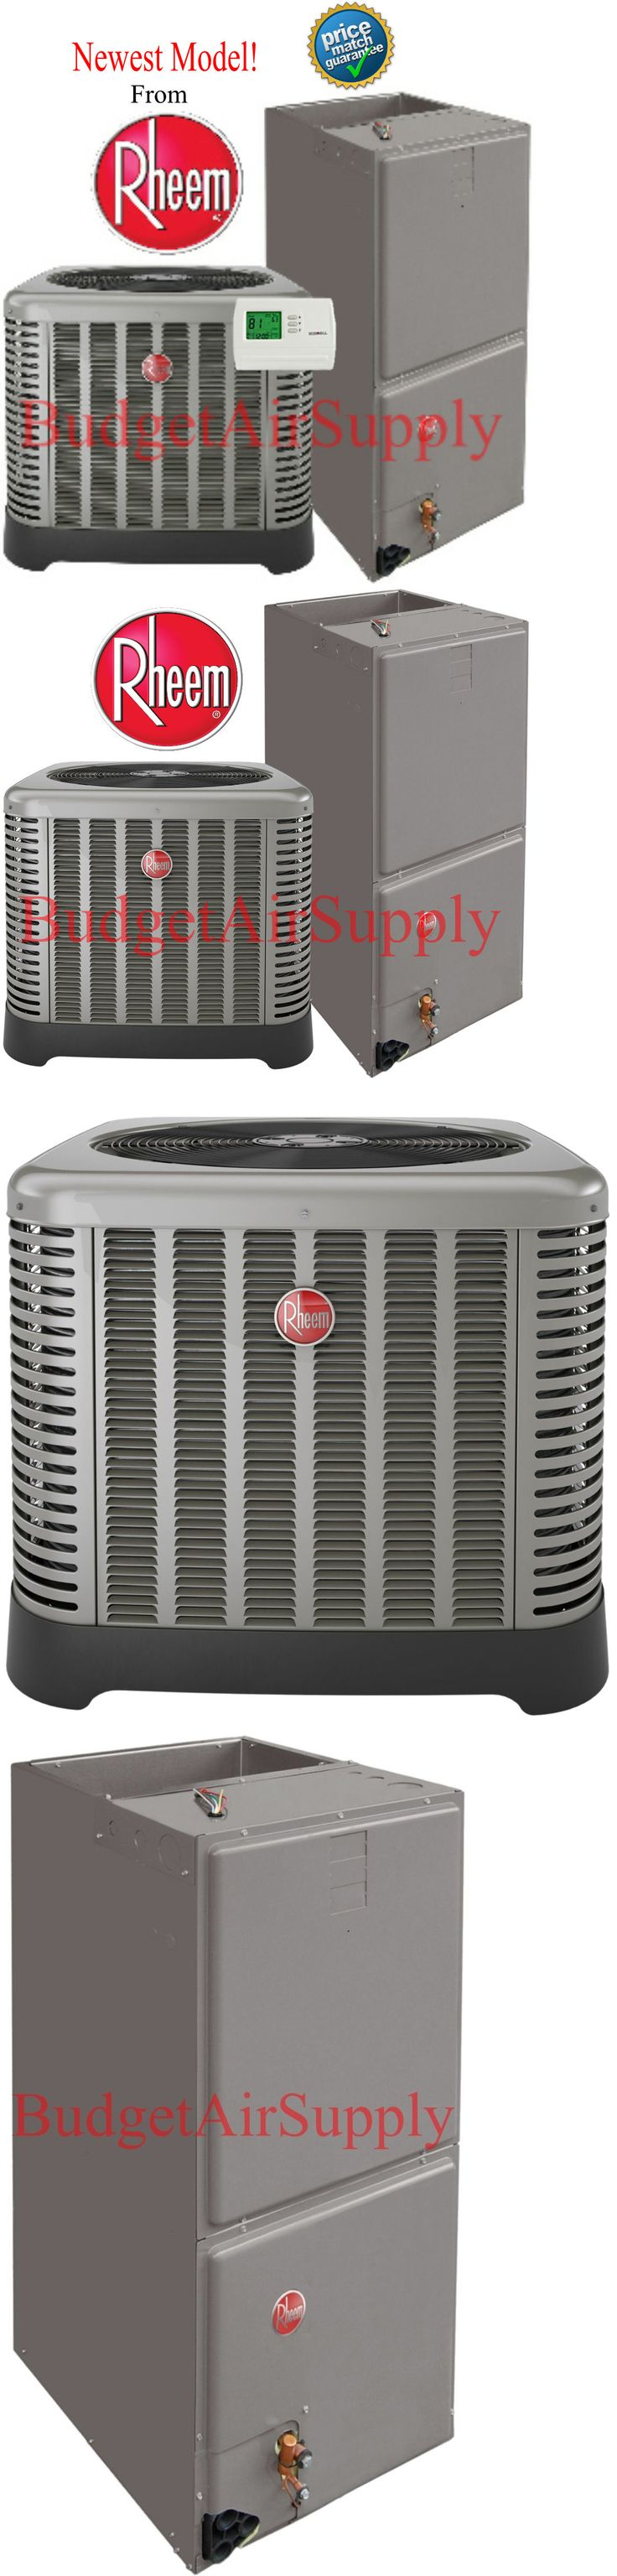 Air Conditioners 69202: Rheem Ruud 5 Ton 16 Seer A C Split System Ra1660aj1+Rh1t6024stanja Newest!! -> BUY IT NOW ONLY: $2575 on eBay!